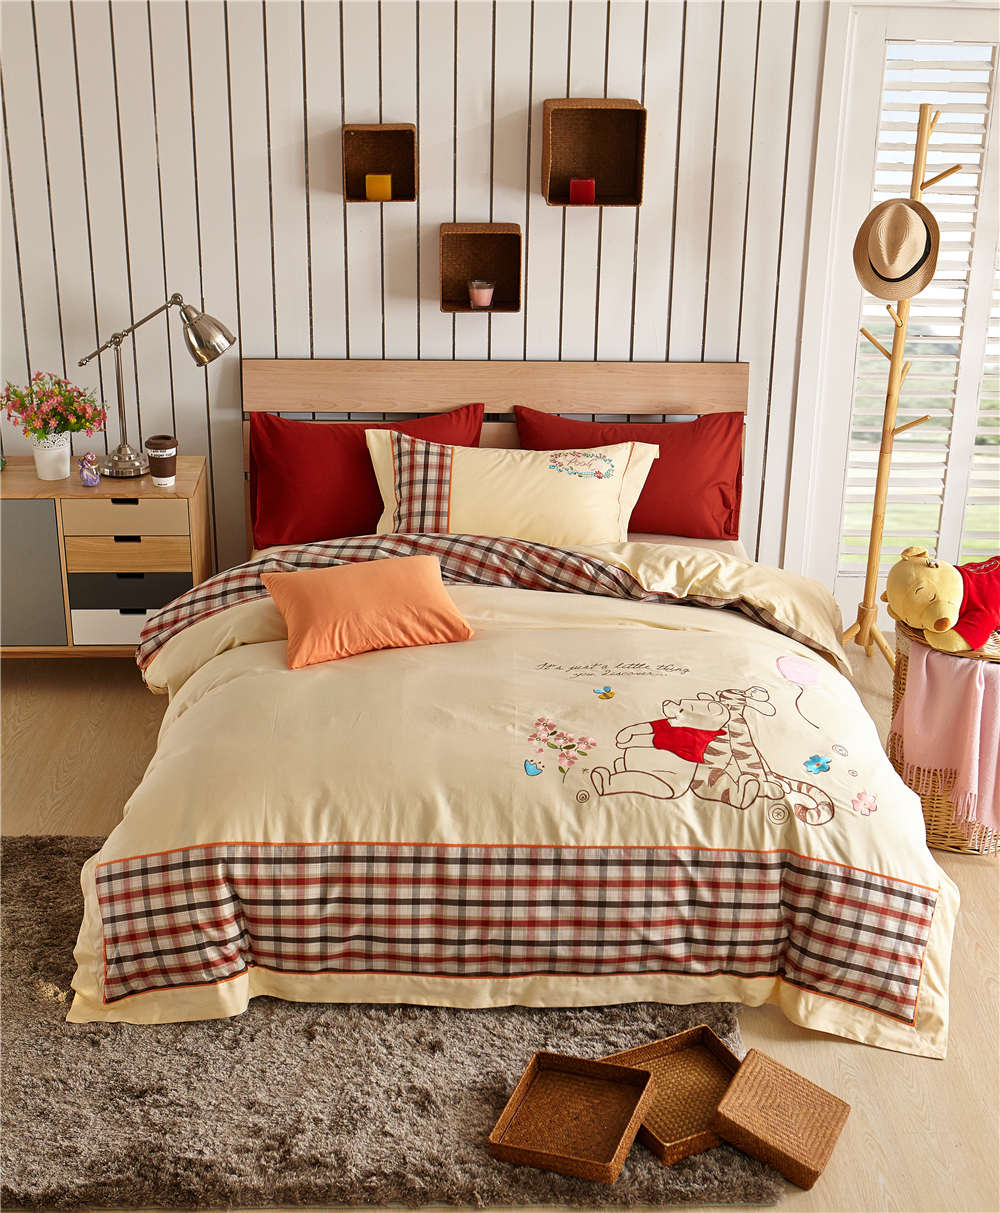 Winnie The Pooh Plaid Bedding Sets Children Bedspreads Bed Covers Sheets Lique Embroidery Cotton Woven Single Twin Full Queen In From Home